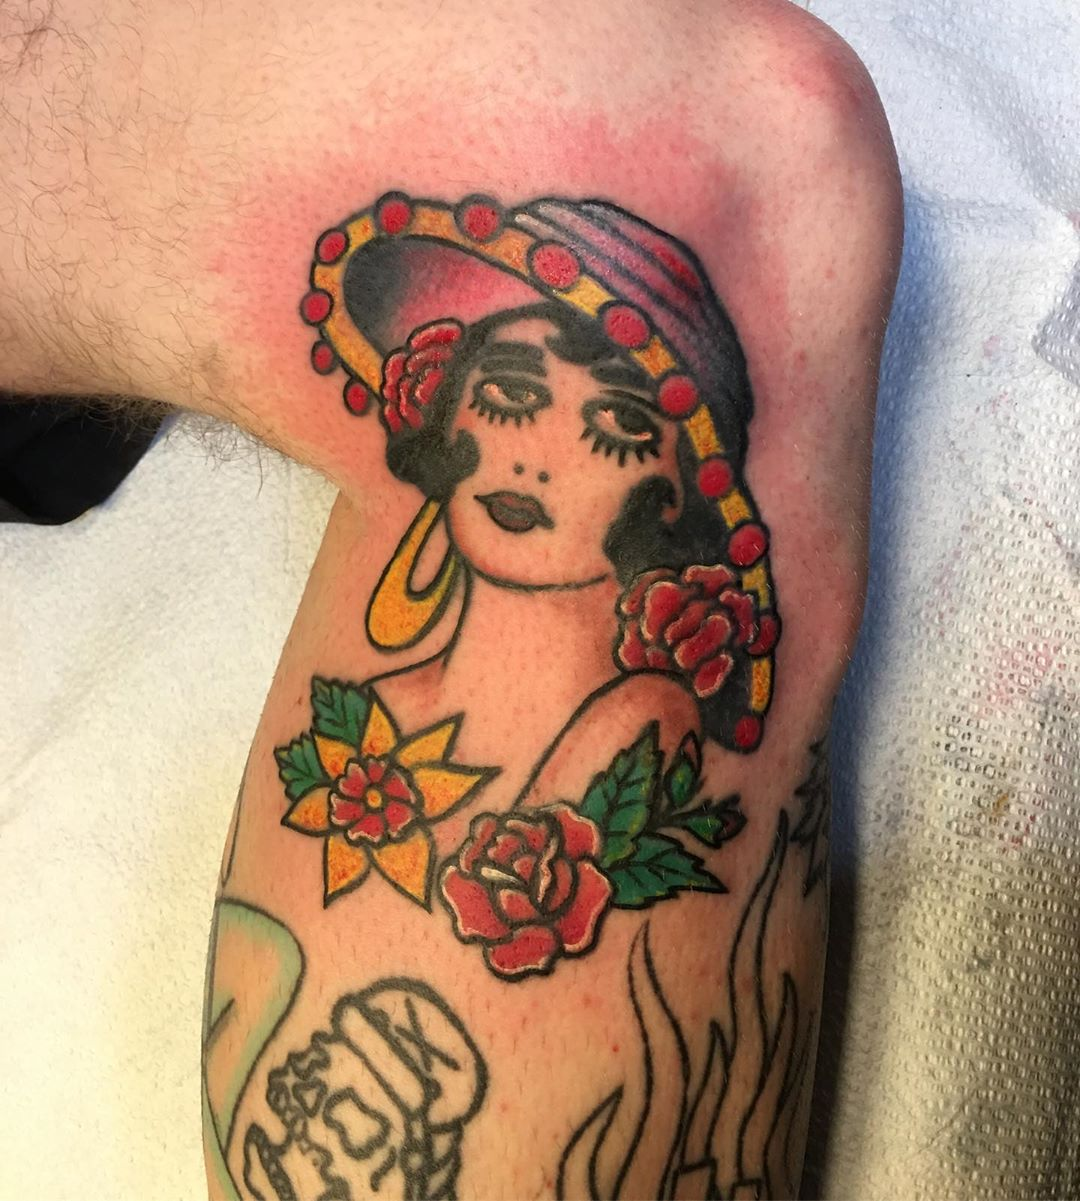 Fixed and colored #pinup #oldfashionedtattoo #classictattoo  #traditionaltattoos #tattooflash #tattoobliss #kneetatts #fixtattoo #redotattoo #ouch